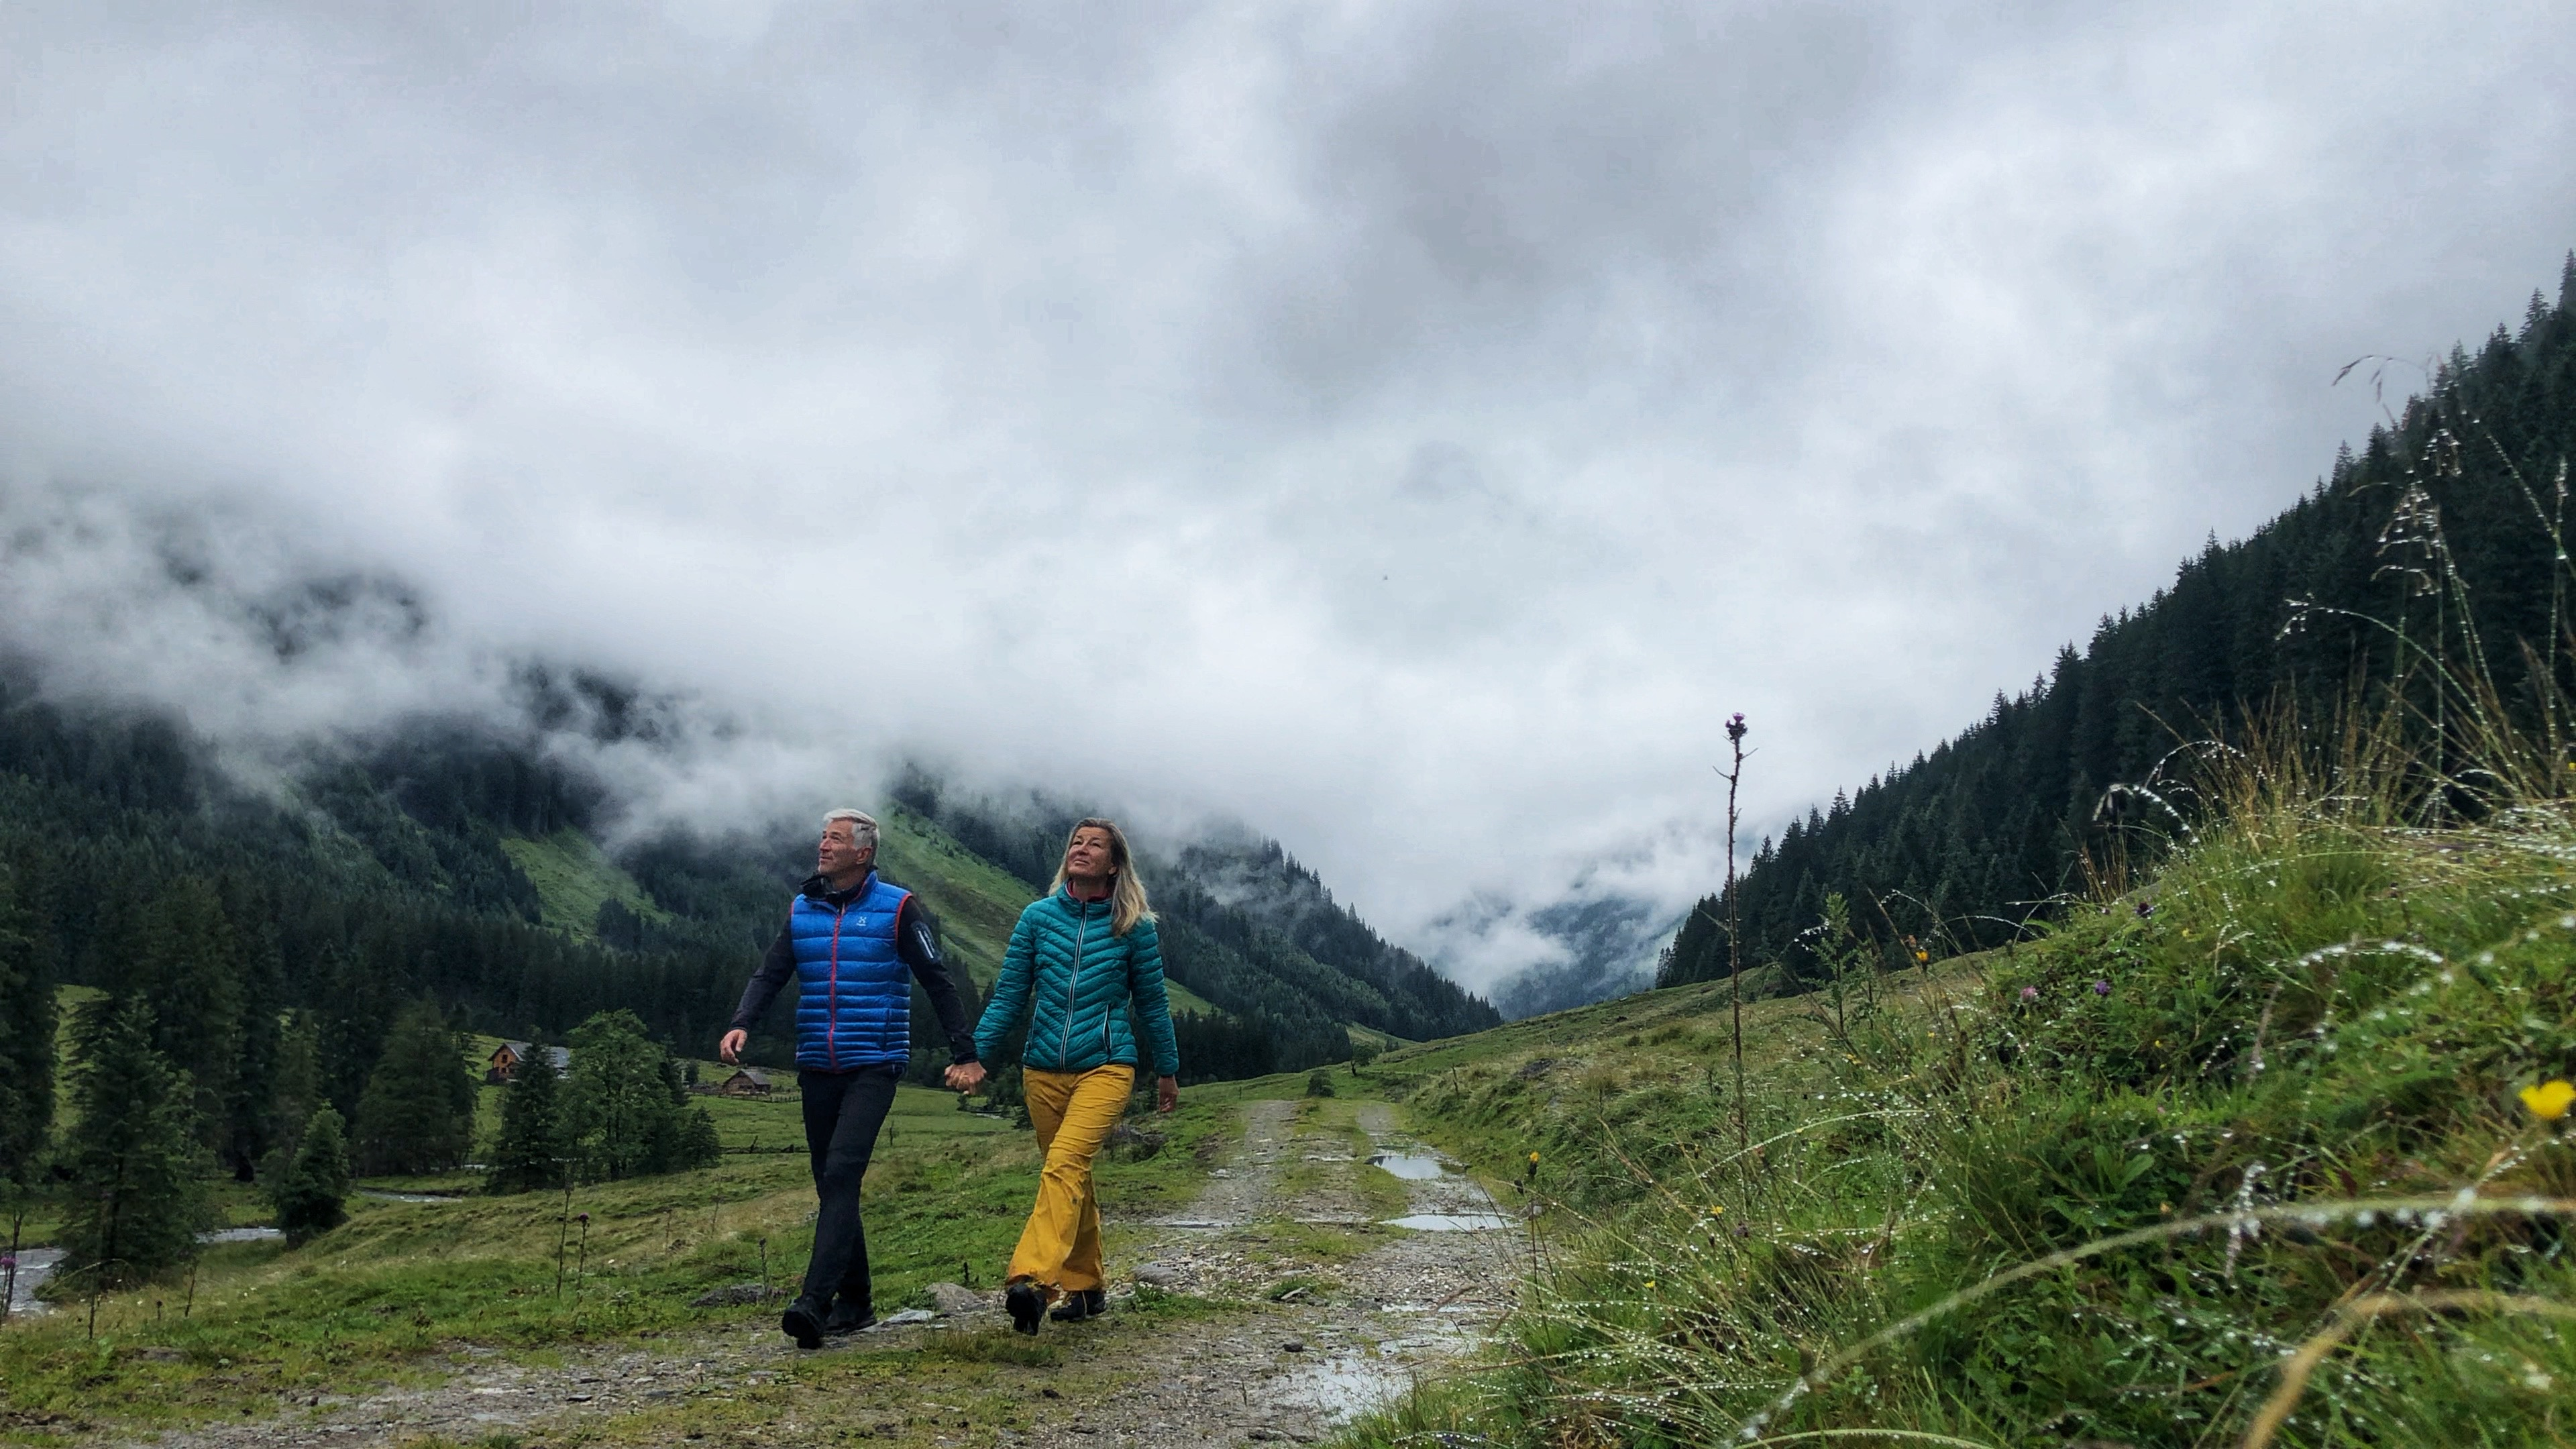 TAO on TOUR - Barbara Froehlich & Harald Noderer